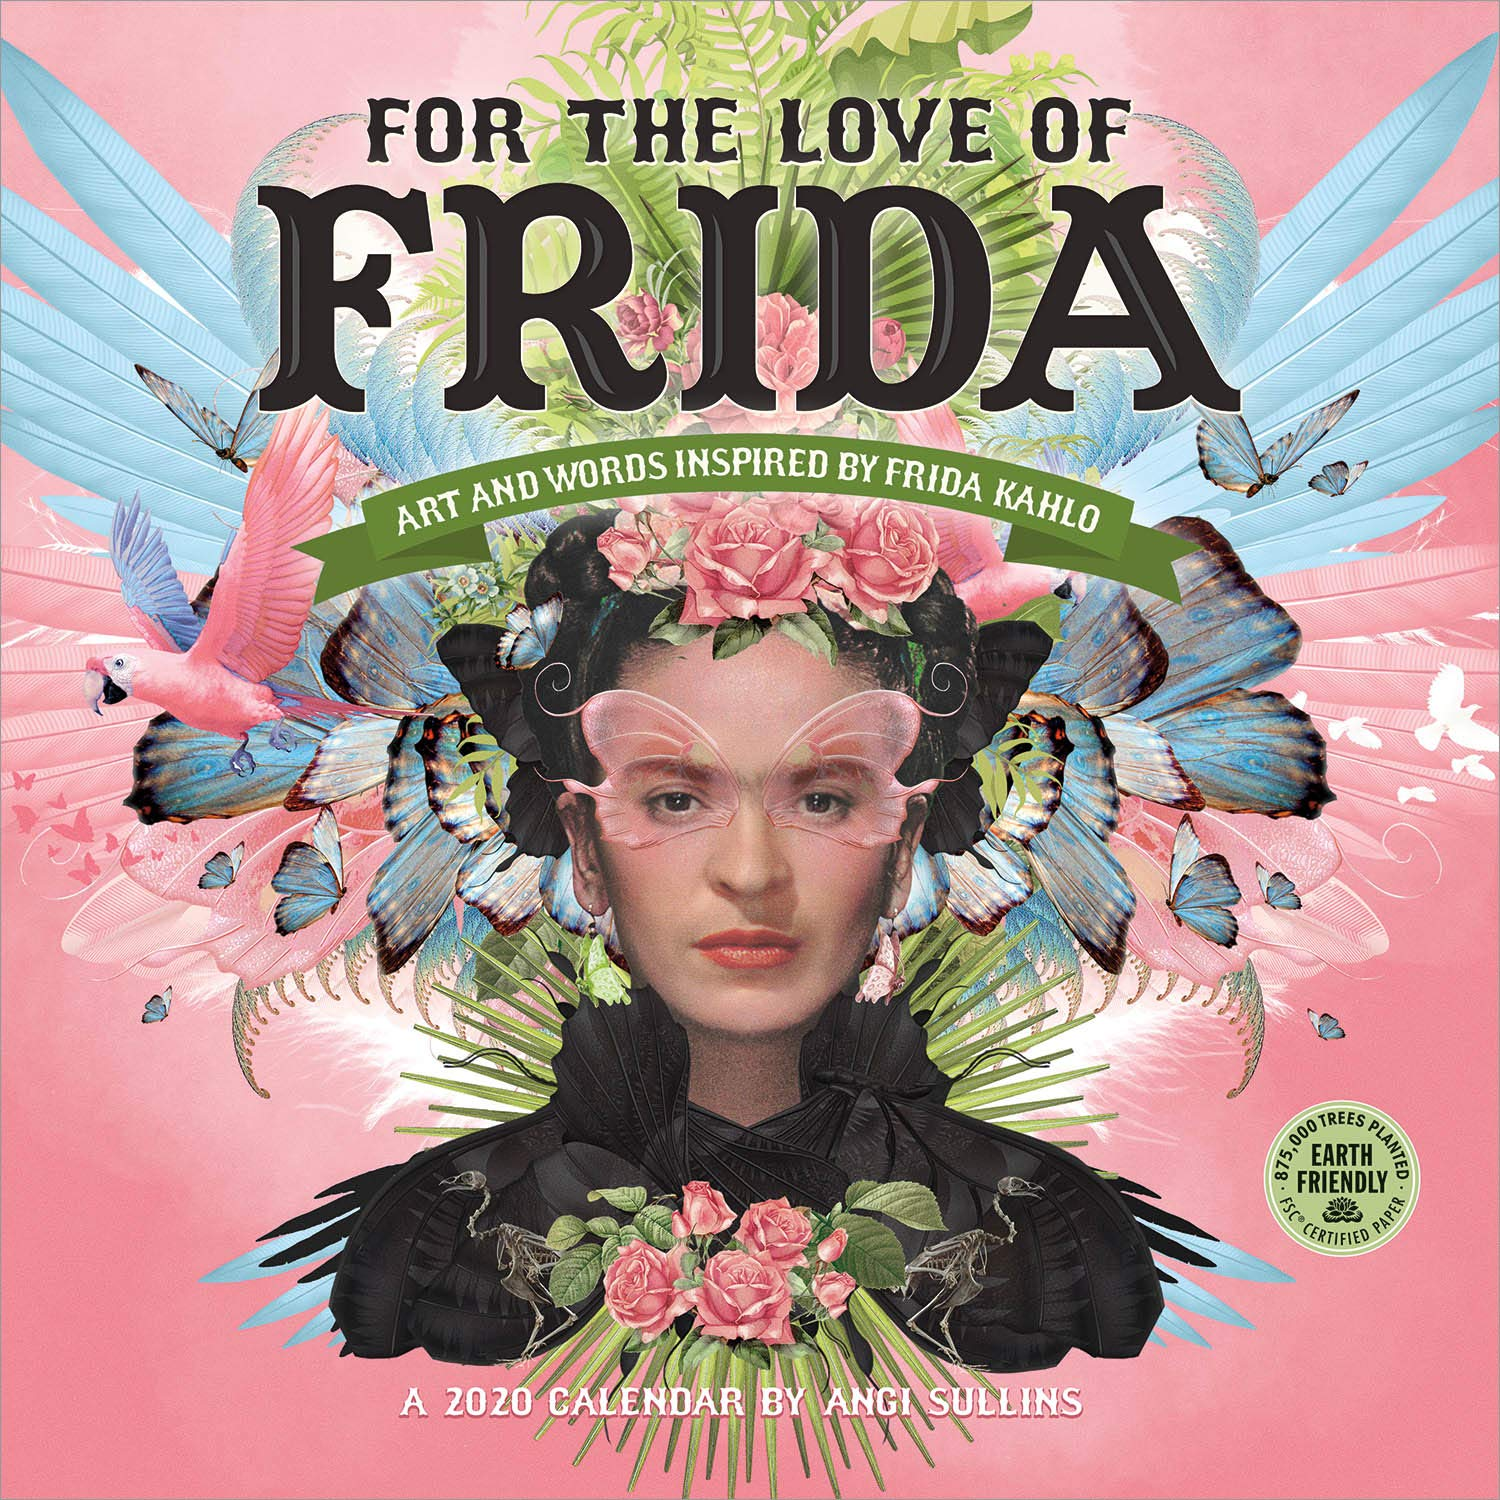 for the love of frida 2020 wall calendar art and words inspired by frida kahlo